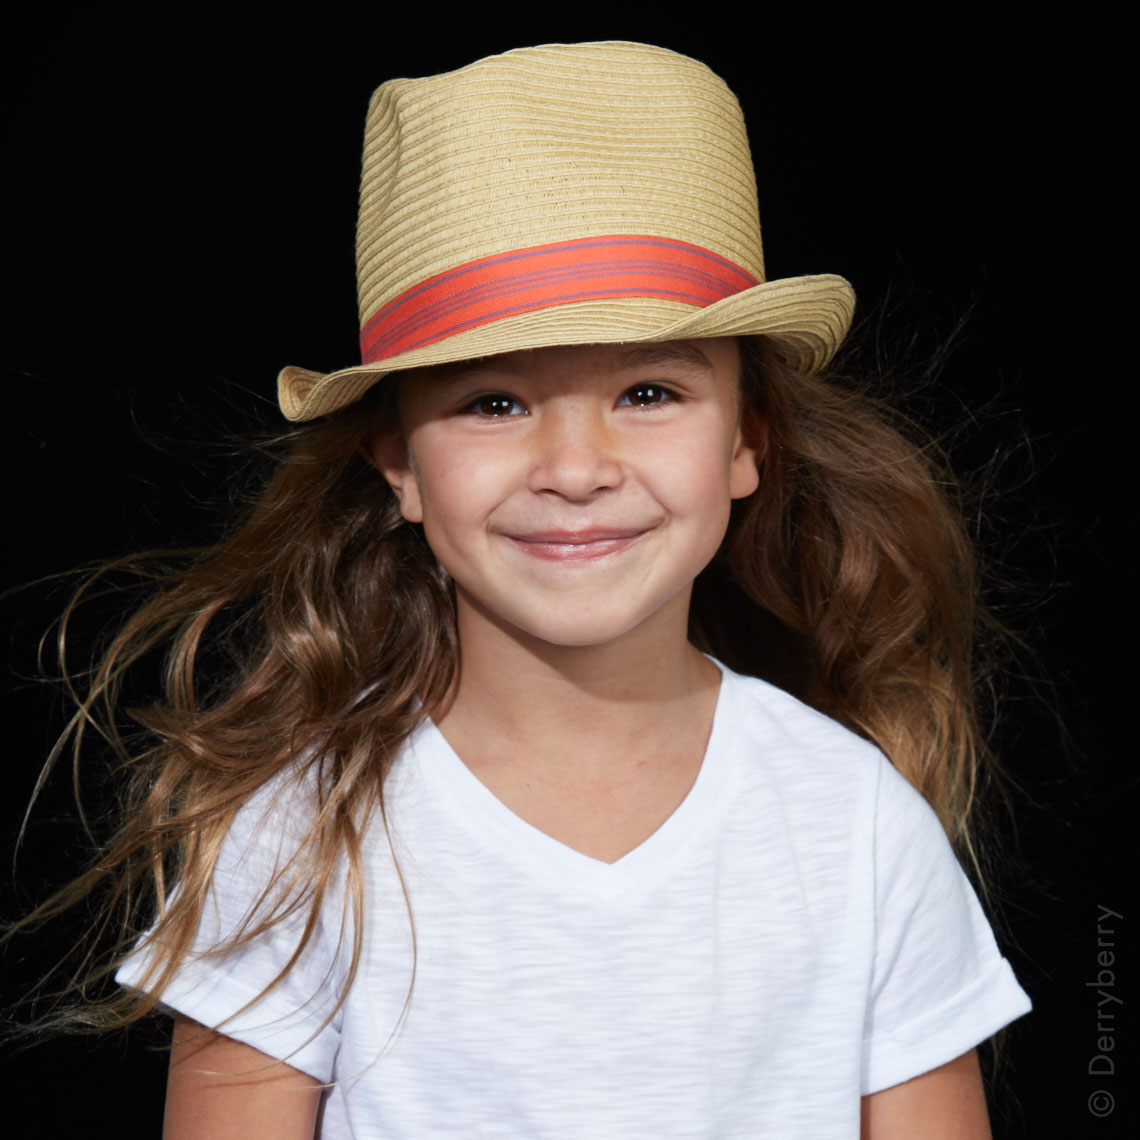 Stylish color studio  portrait of a little girl in a straw hat and white t-shirt